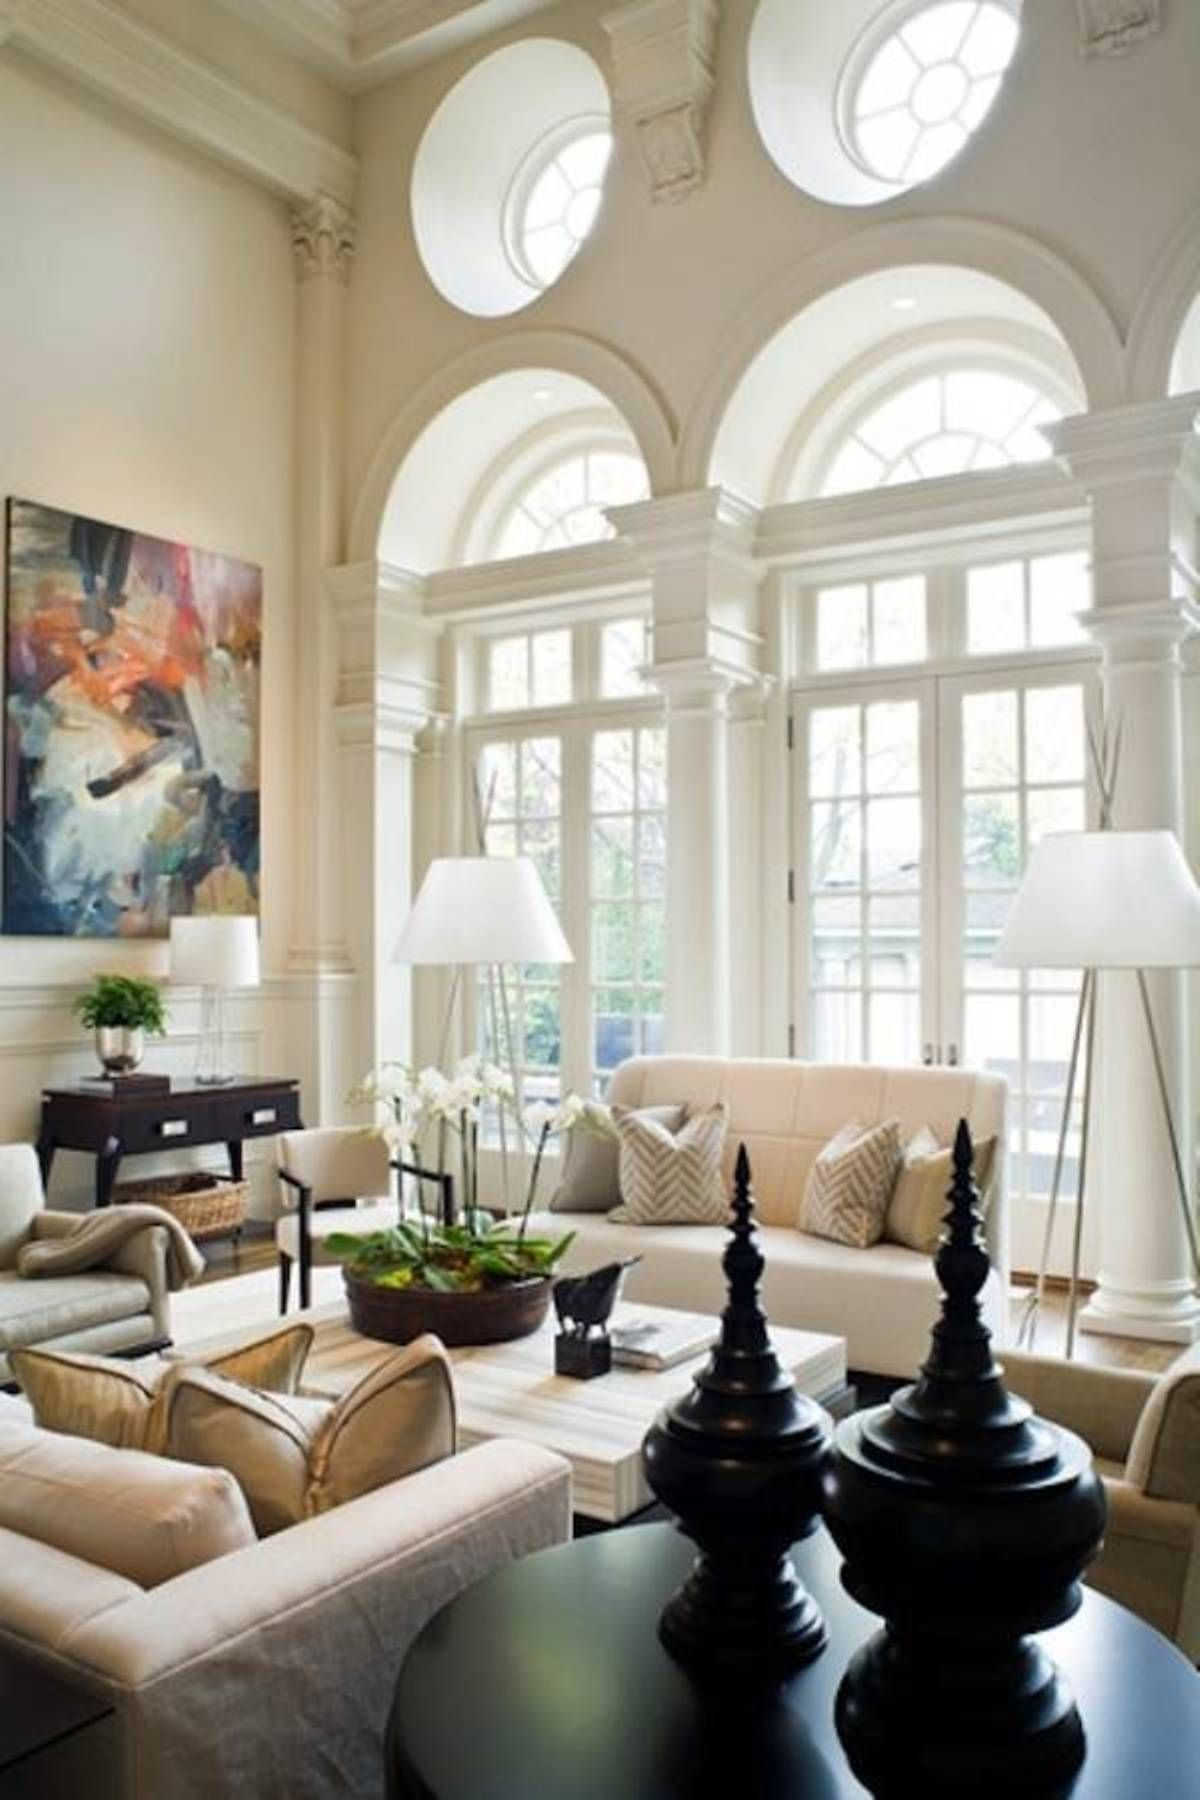 25 Tall Ceiling Living Room Design Ideas | Design Ideas ...